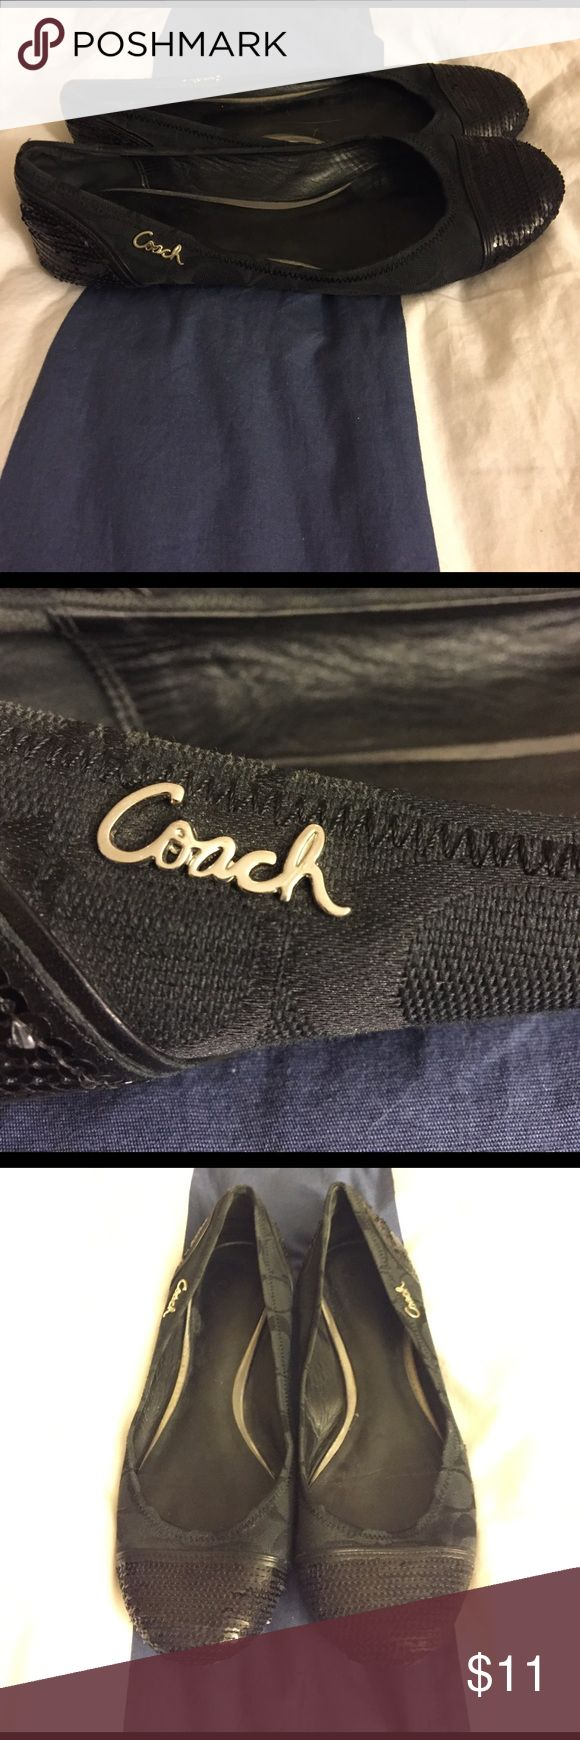 Used Size 9 coach flats. Size 9 coach flats that have been worn. Please see pictures. Black Coach Cs on fabric, metal coach logo and sequins on front and back. Priced accordingly. Coach Shoes Flats & Loafers